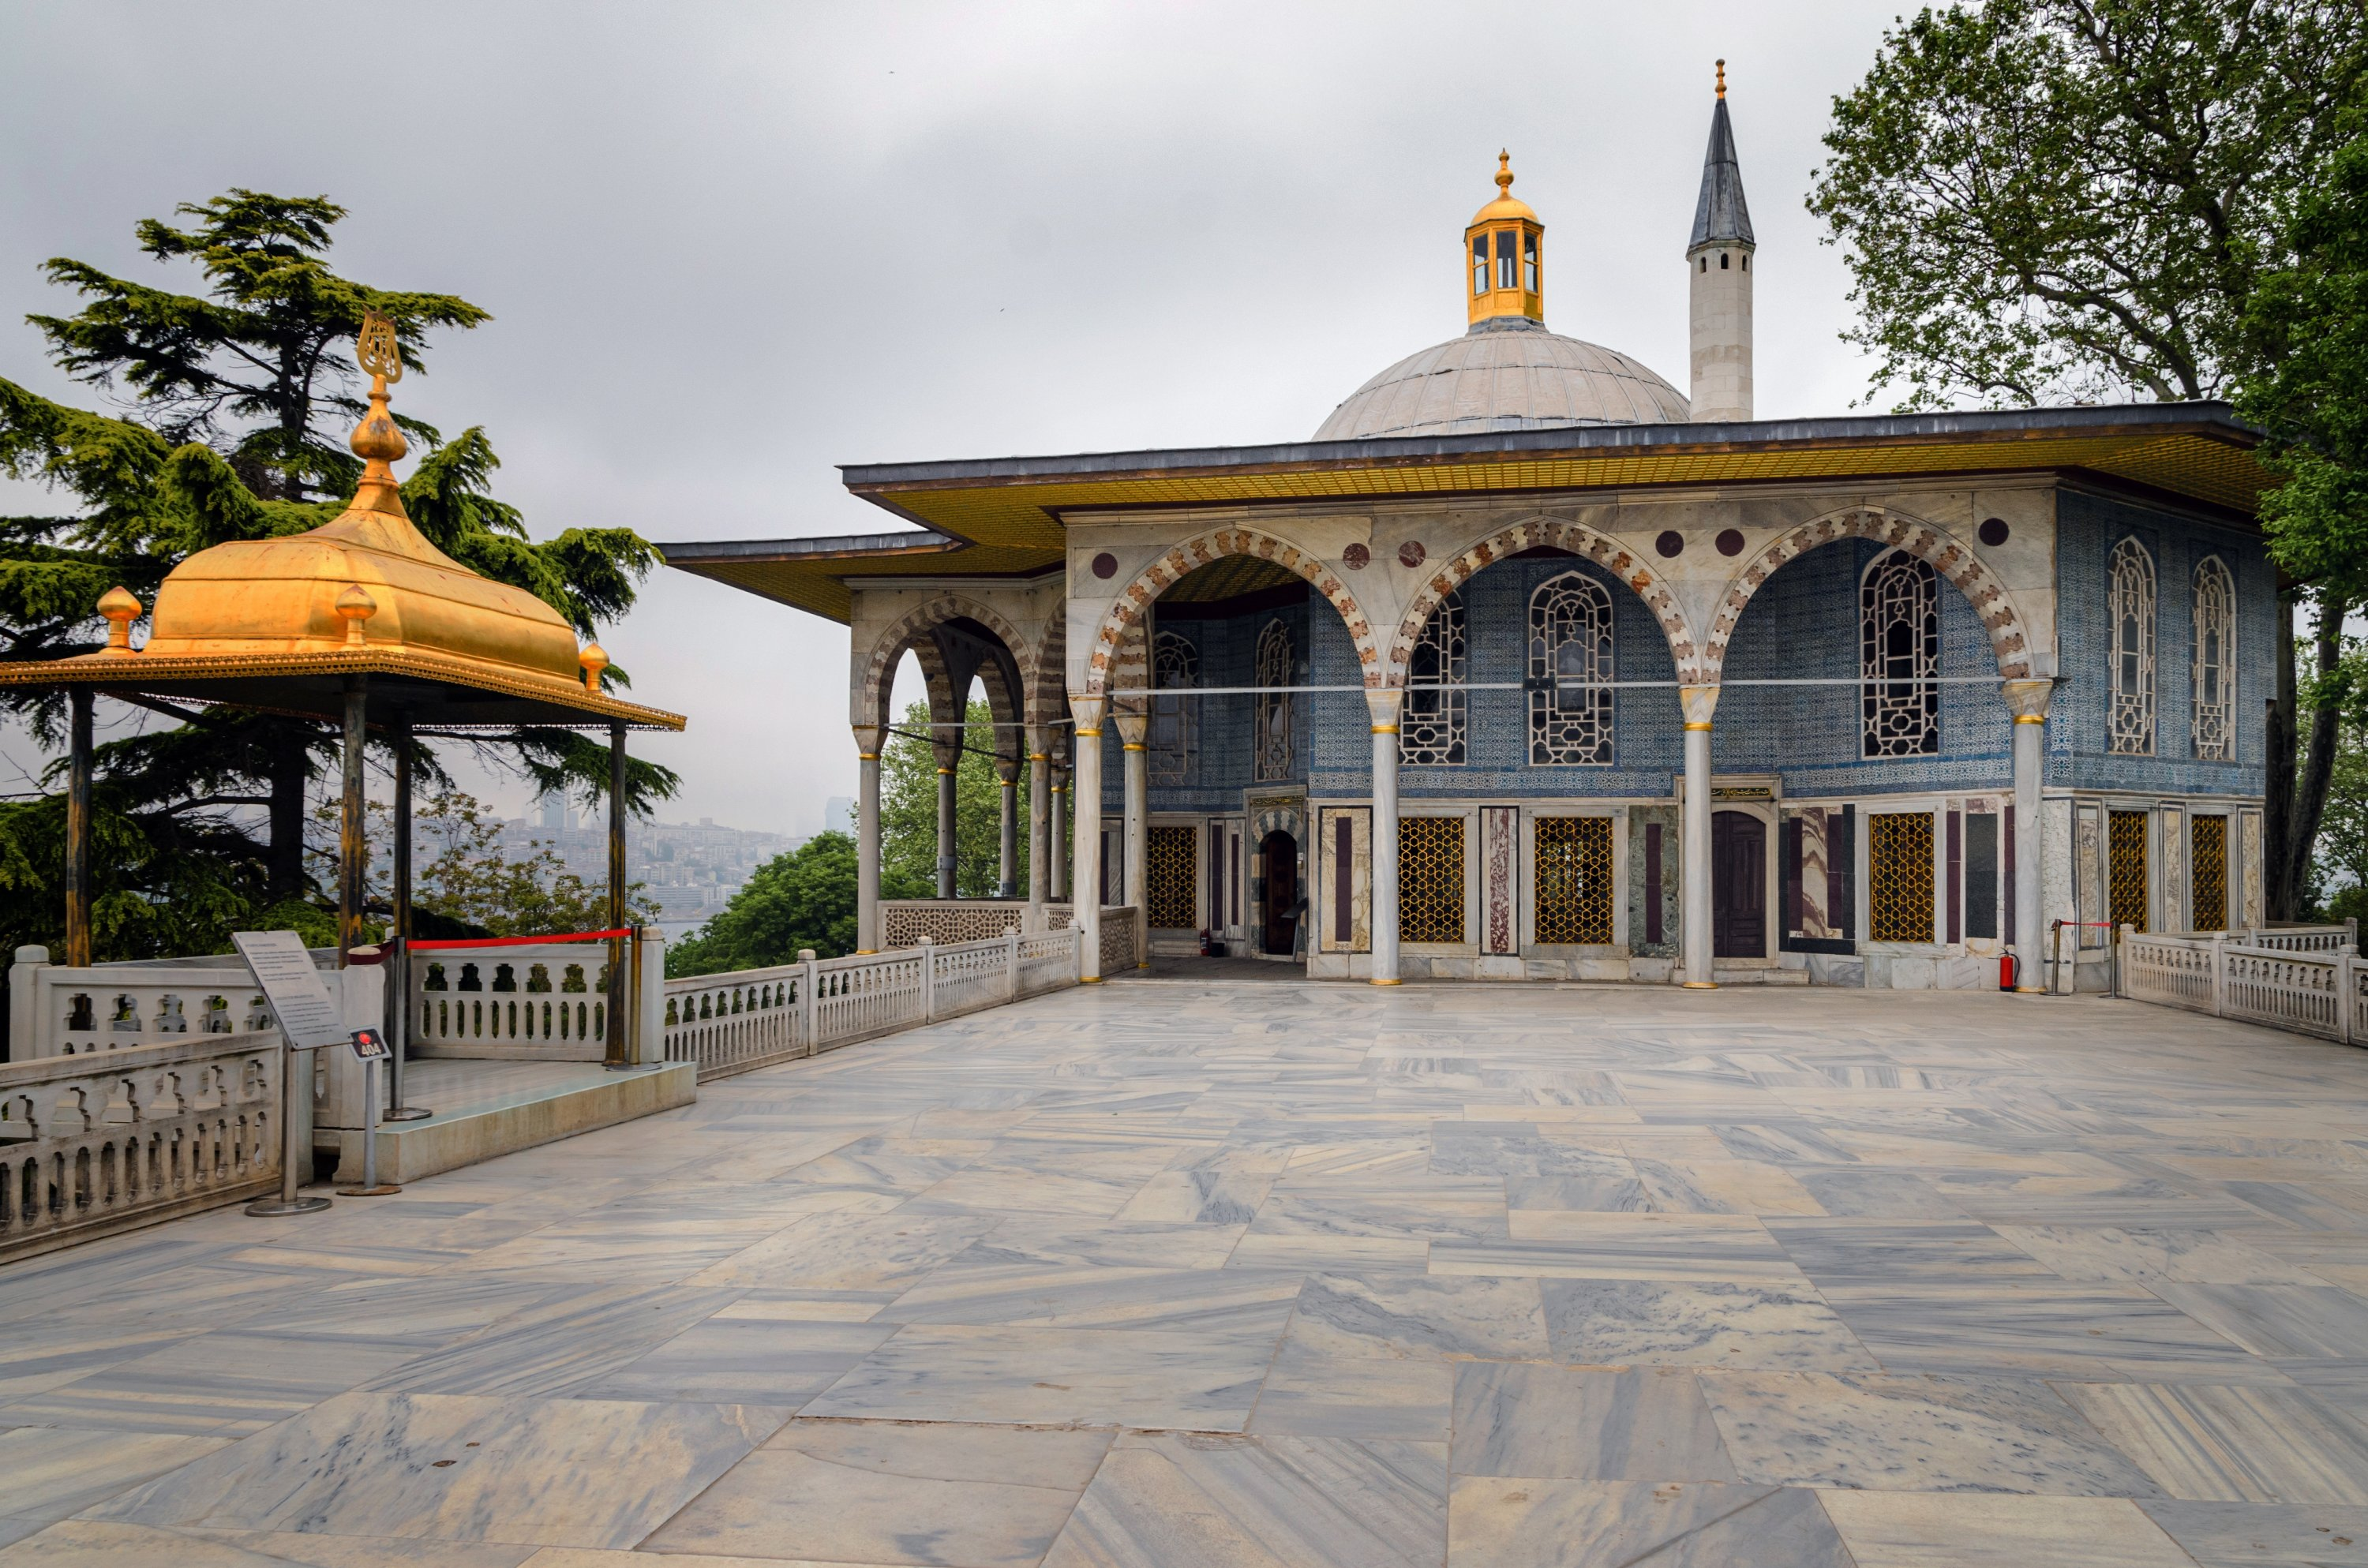 The gorgeous decorated buildings in Topkapı Palace. (Shutterstock Photo)